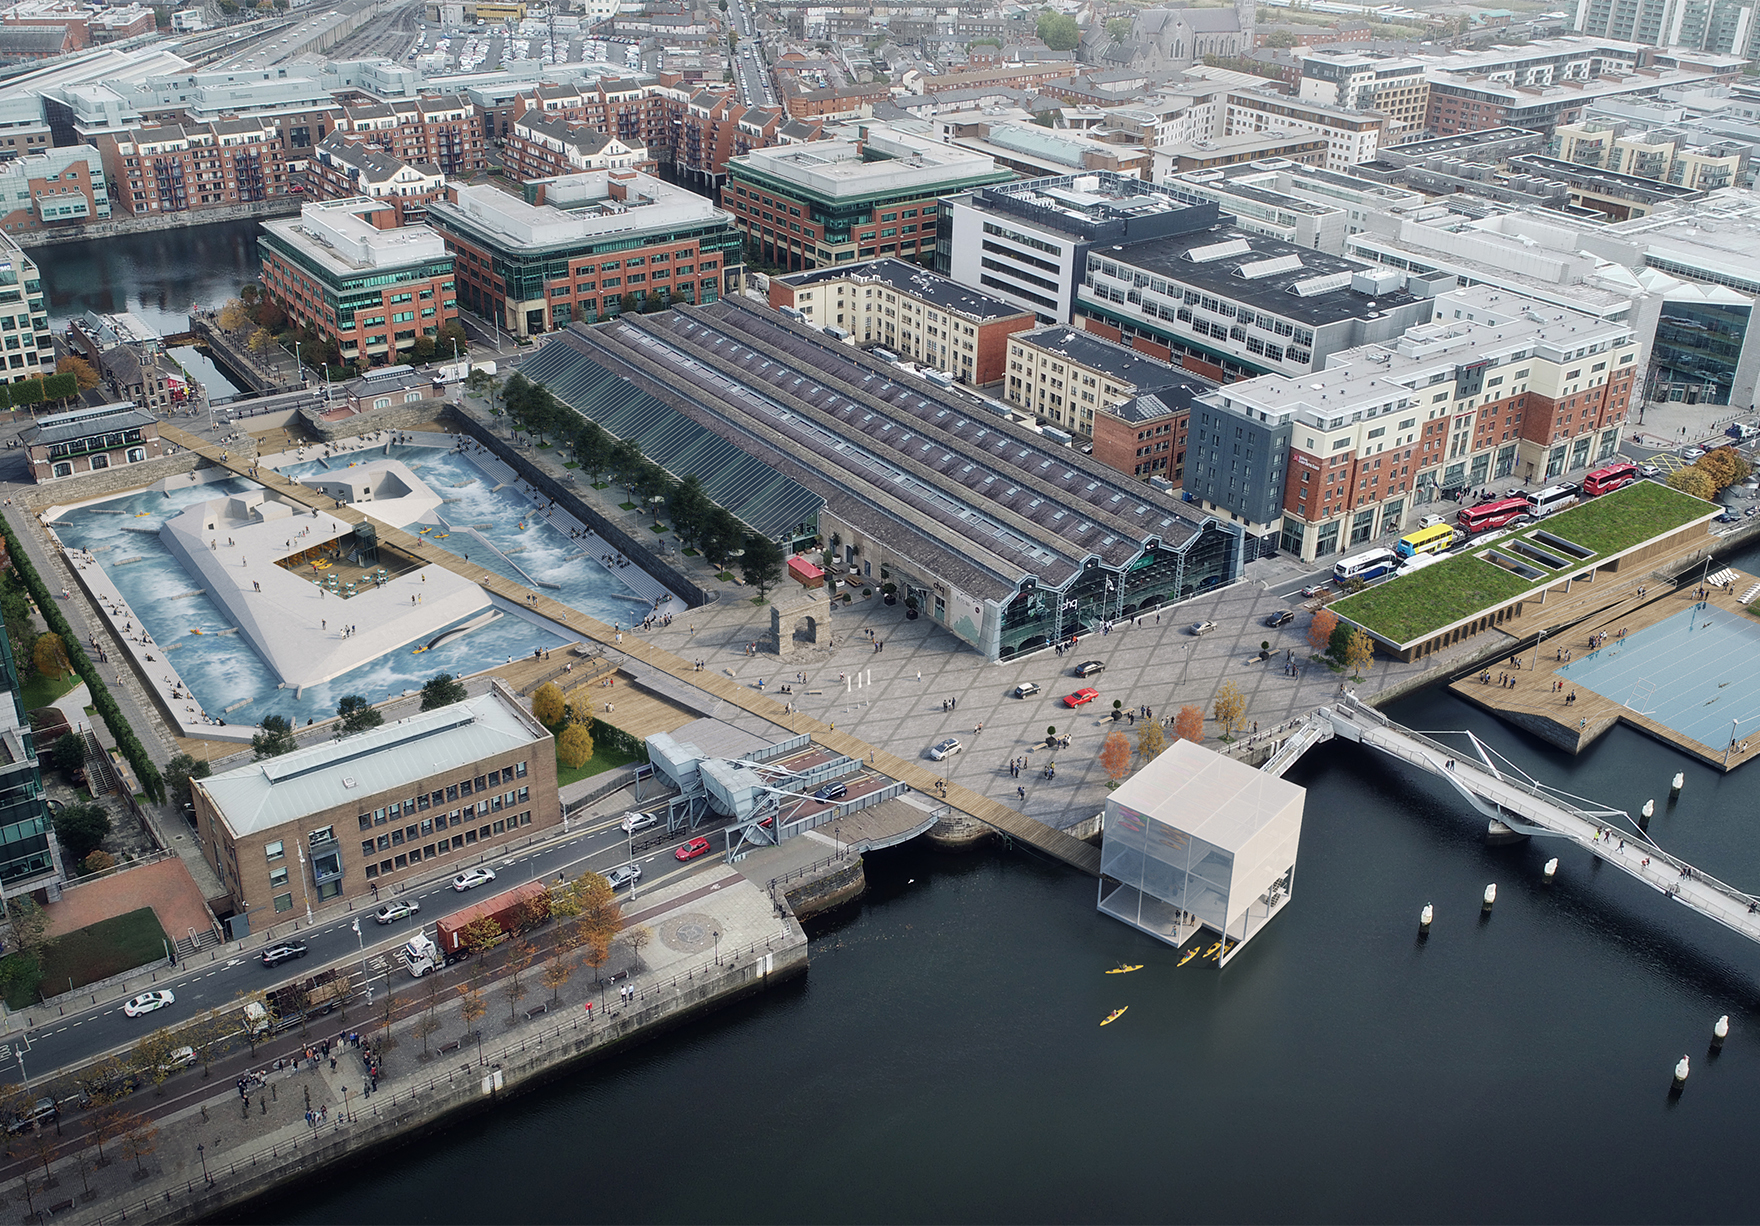 Dublin White Water Centre Faulknerbrowns Architects Sport Leisure Active Design Aerial View Lh